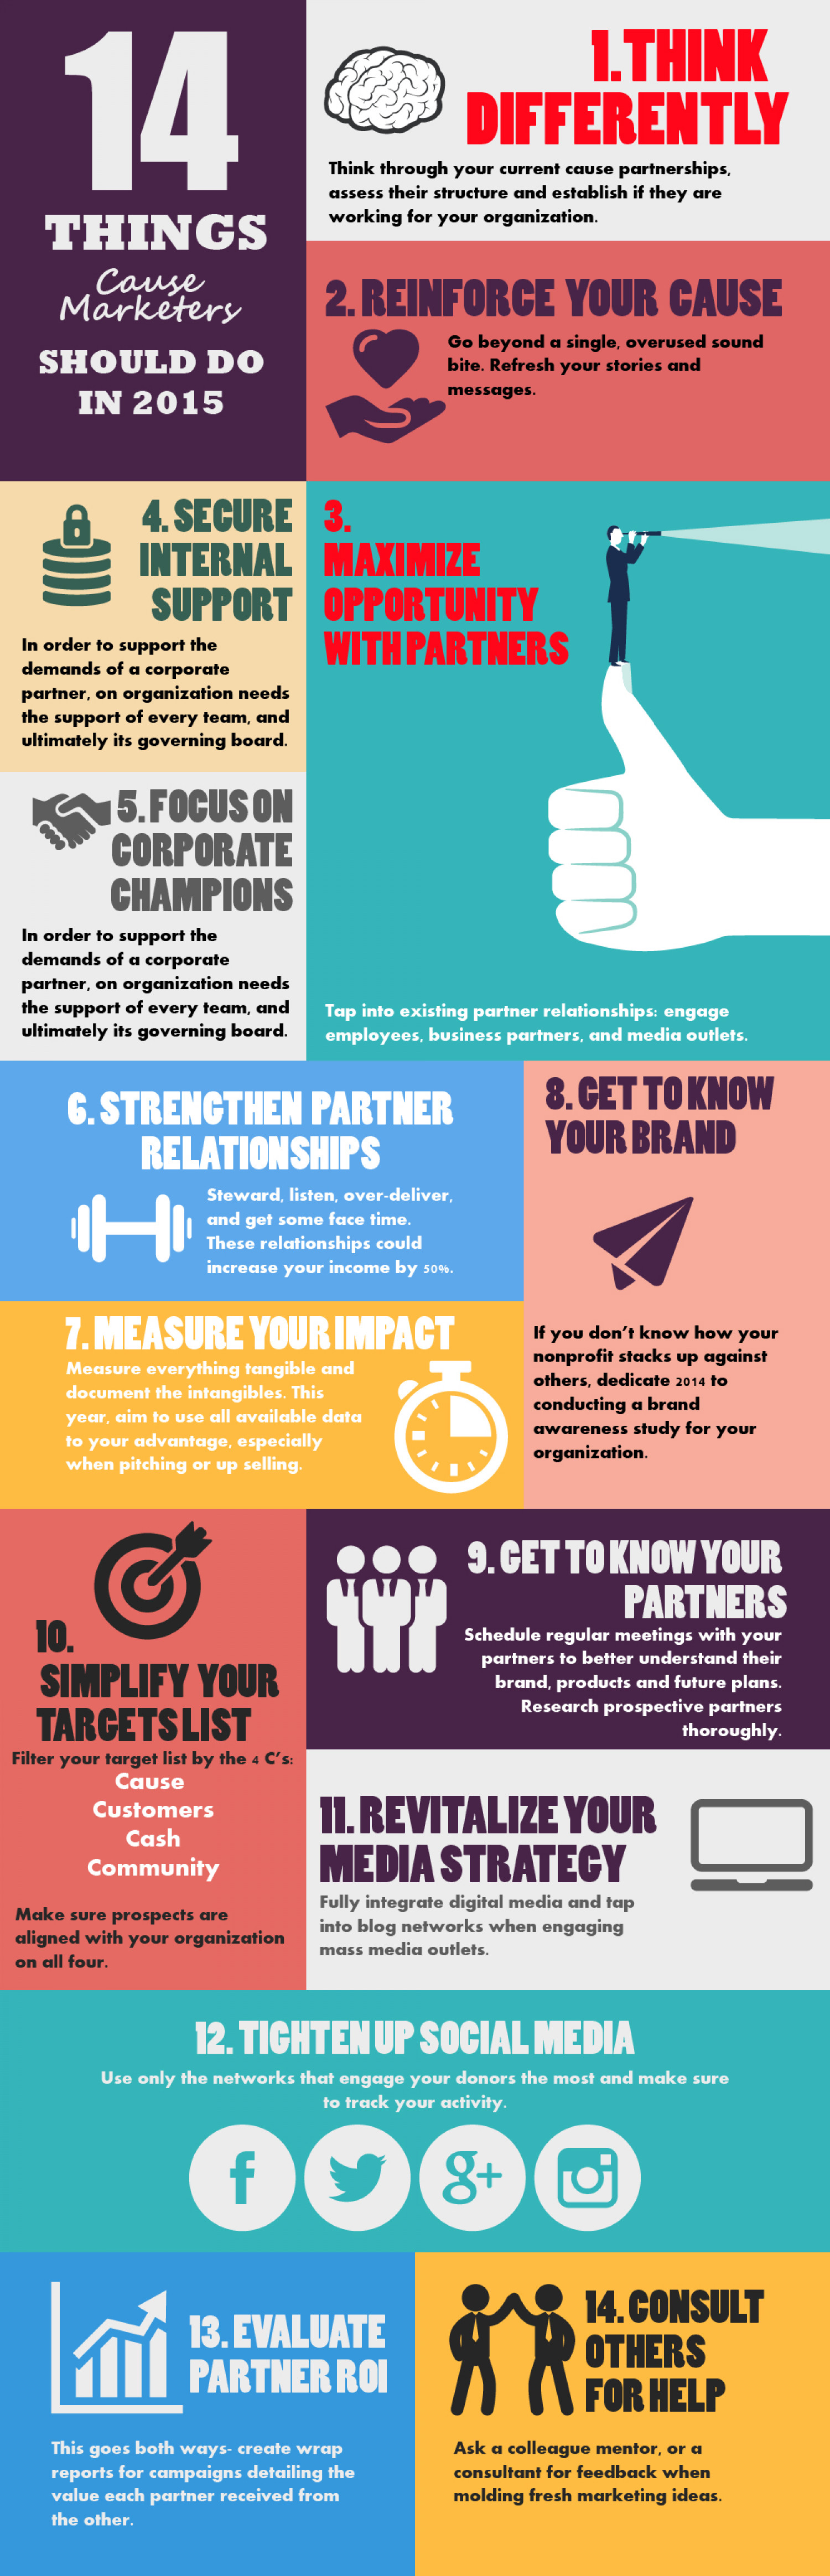 Cause Marketing Predictions For 2015 Infographic